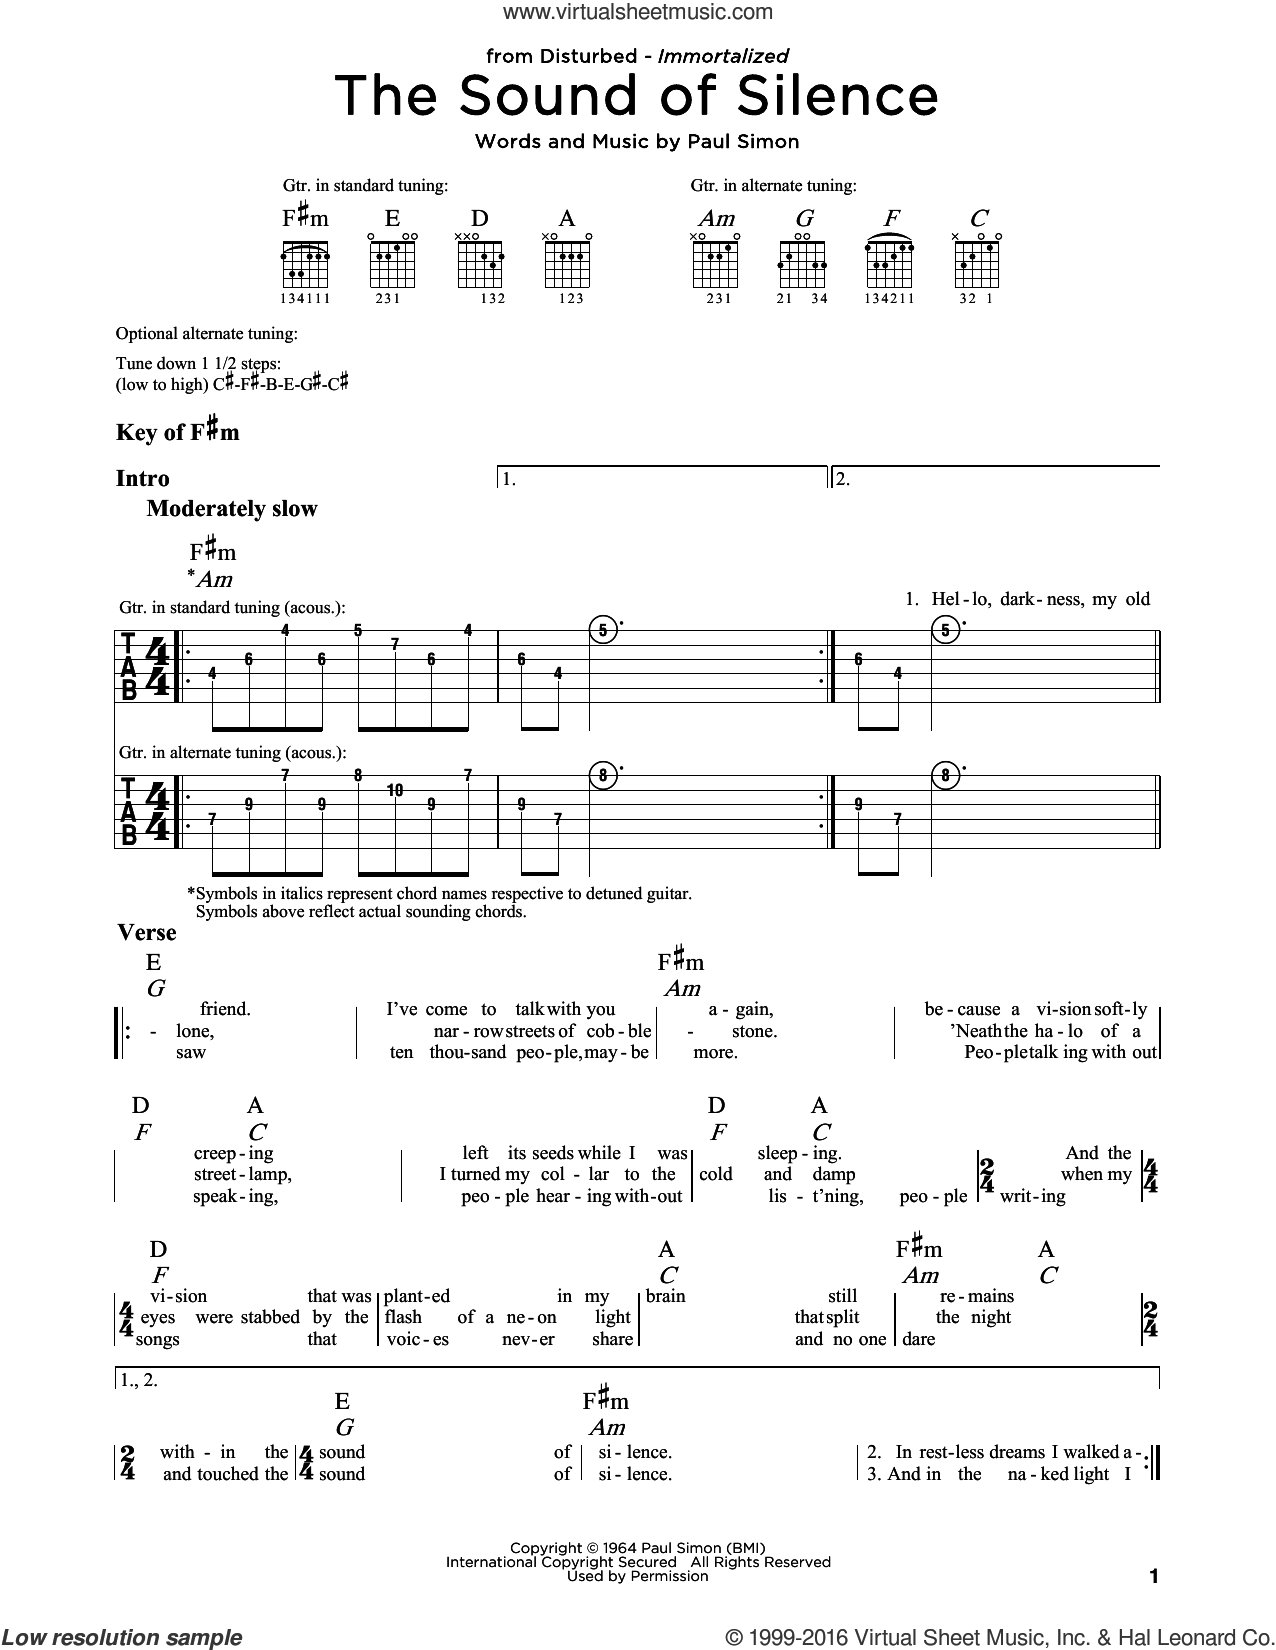 The Sound Of Silence sheet music for guitar solo (lead sheet) by Paul Simon, Disturbed and Simon & Garfunkel. Score Image Preview.